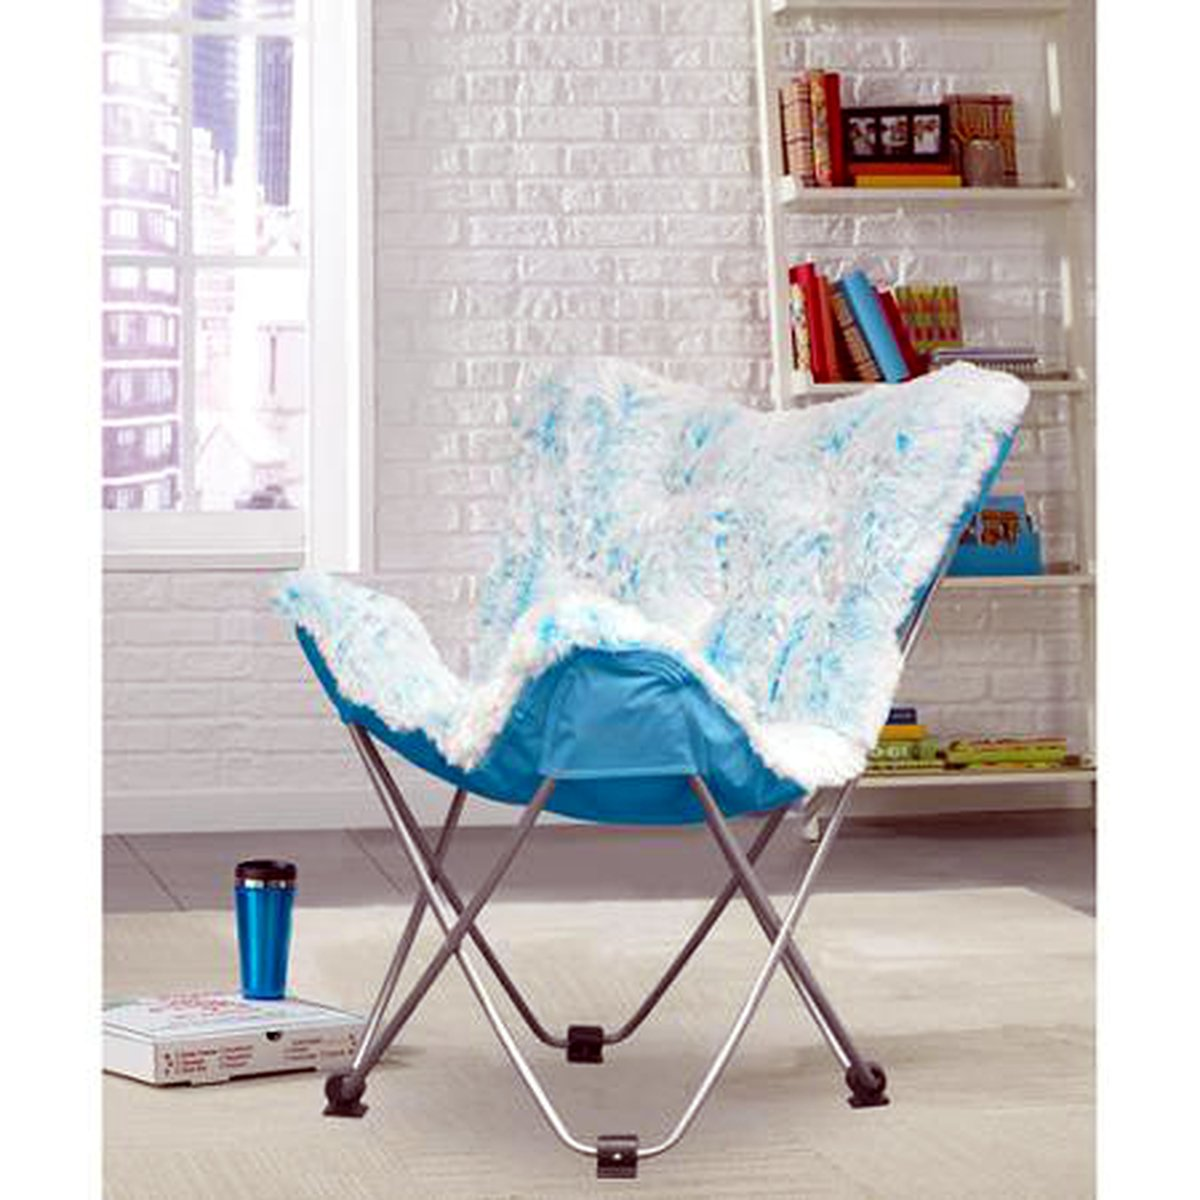 Superieur Amazon.com: Butterfly Folding Chair In Faux Fur Or Vegan Leather. Portable  For Sports, Adults U0026 Childrens Rooms, Tailgate Parties, Even Camping ...